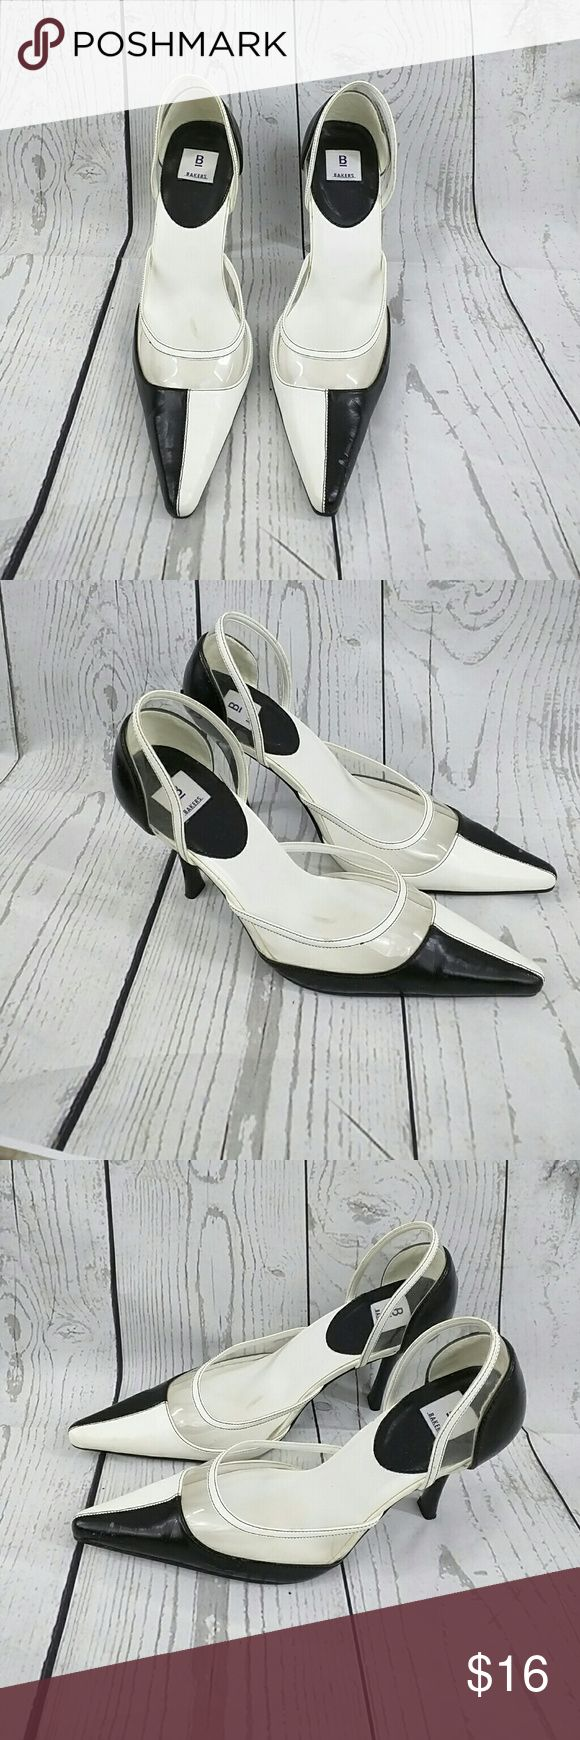 Baker's 8B black and white pumps women shoes Very nice black and white women's pumps shoes heels Bakers Shoes Heels